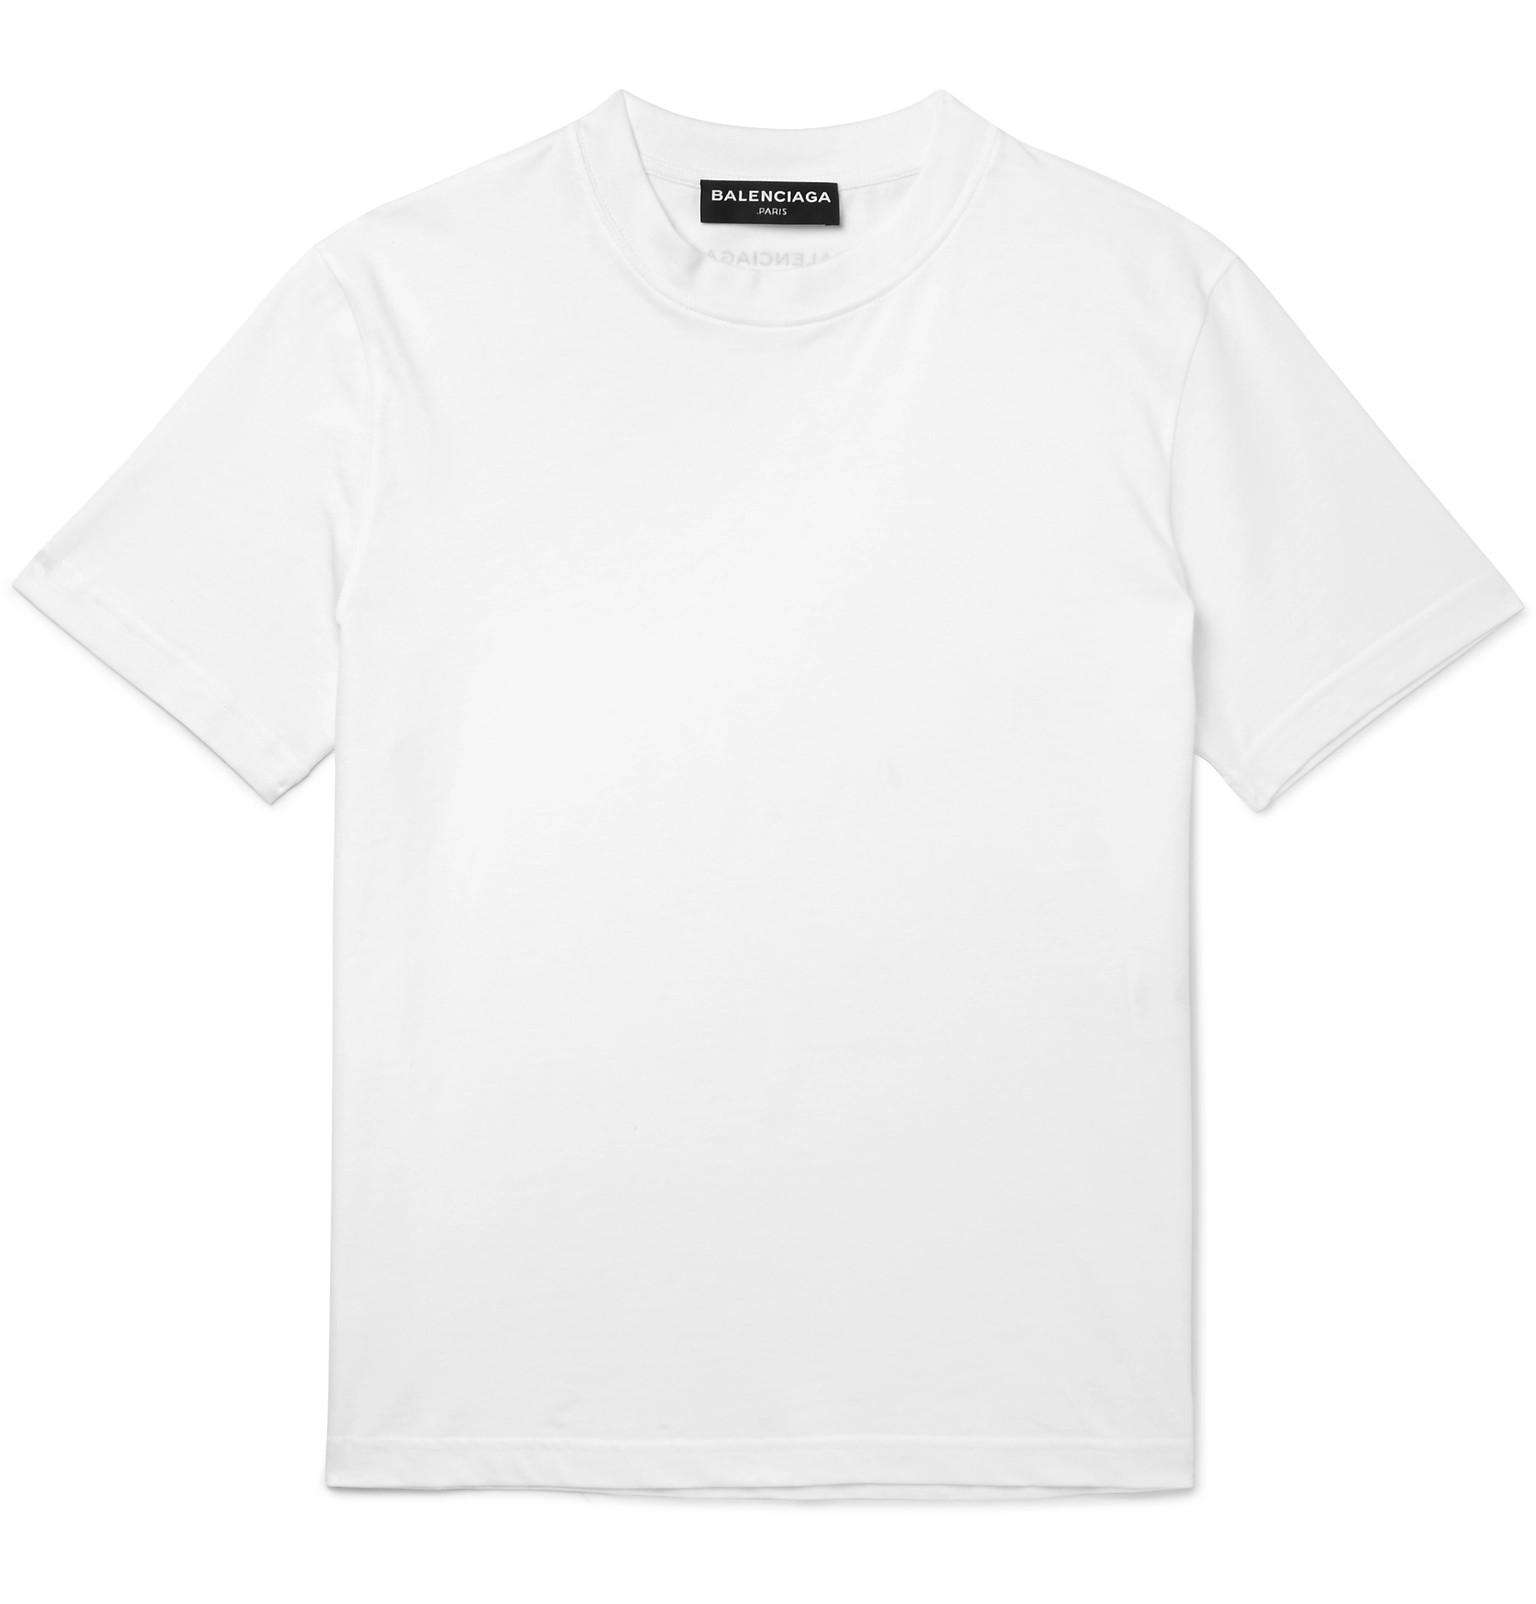 balenciaga cotton jersey t shirt in white for men lyst